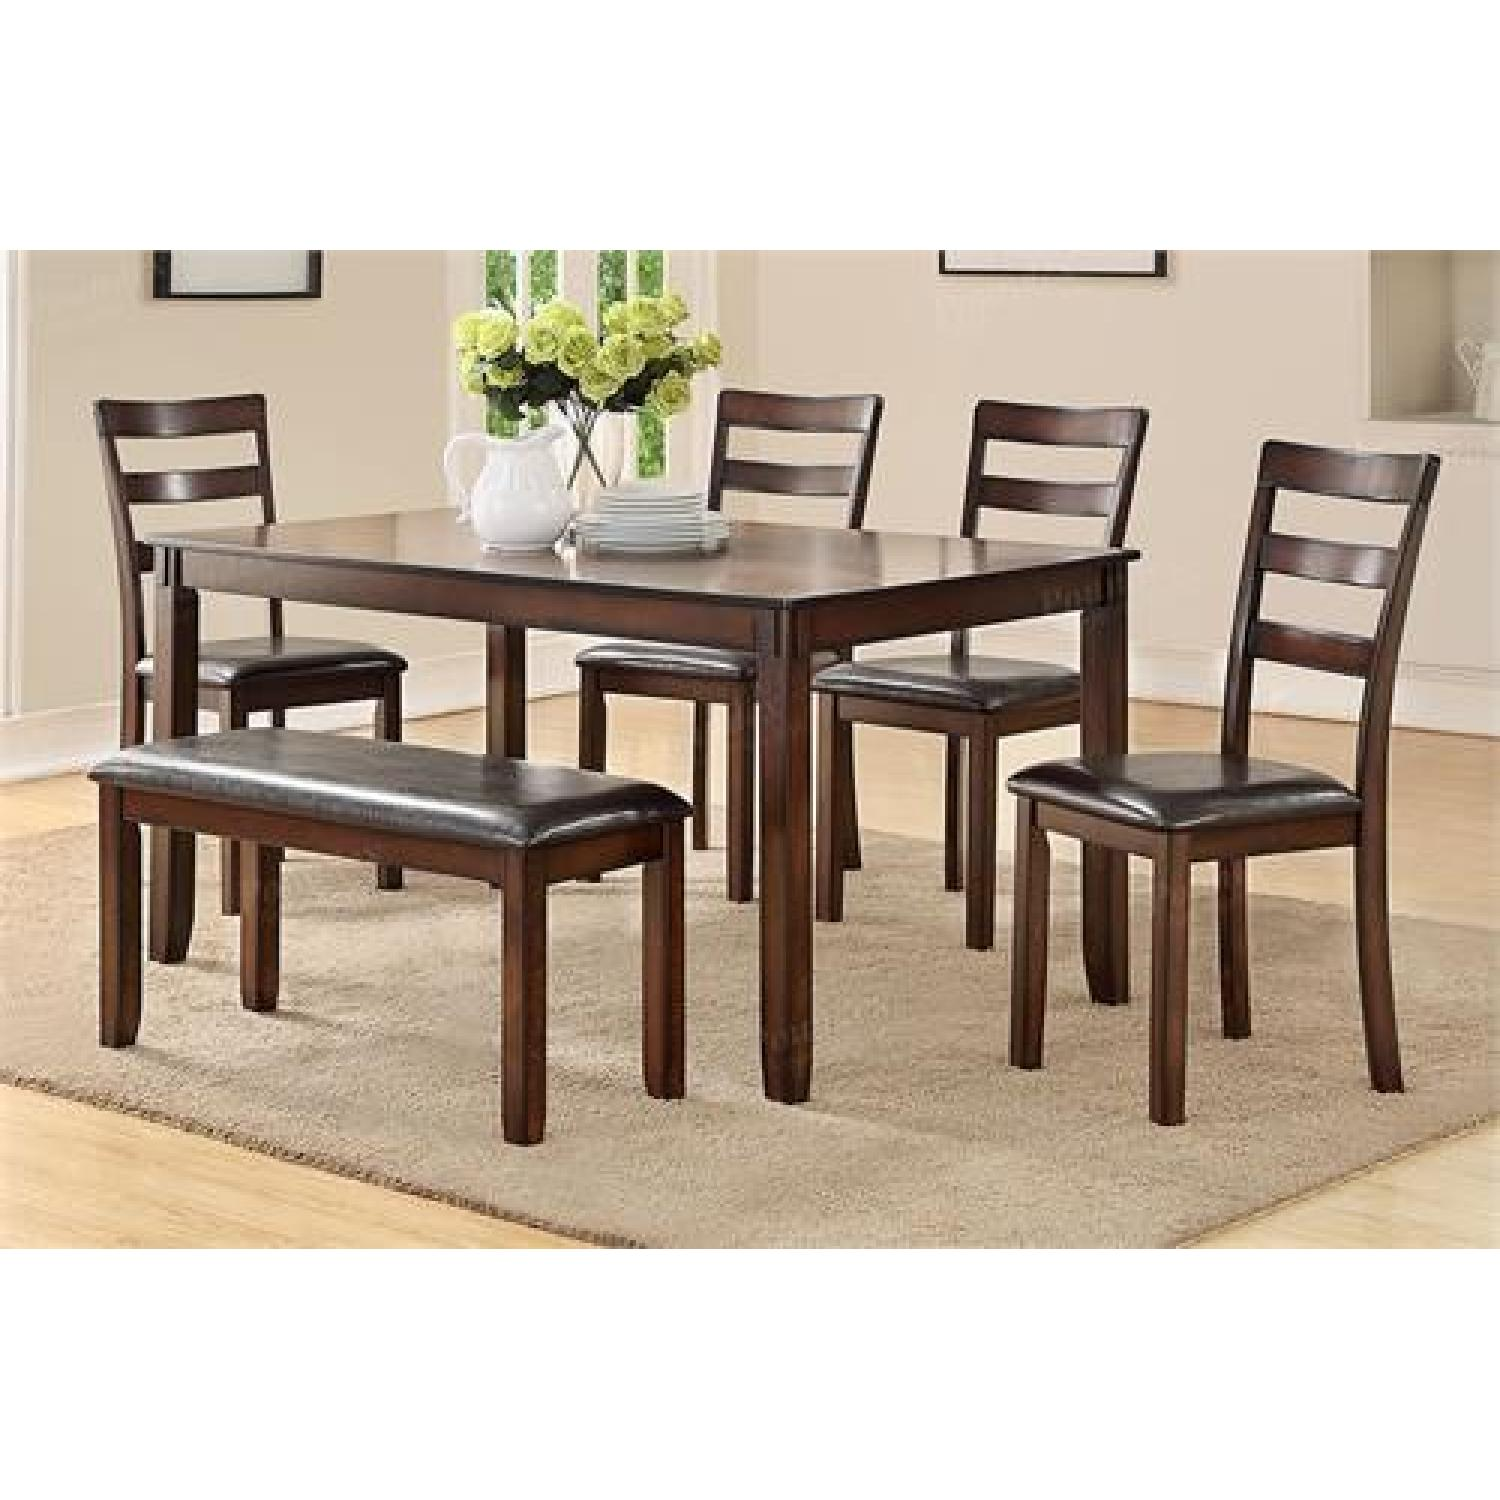 6 Piece Casual Dining Set In Brown ...